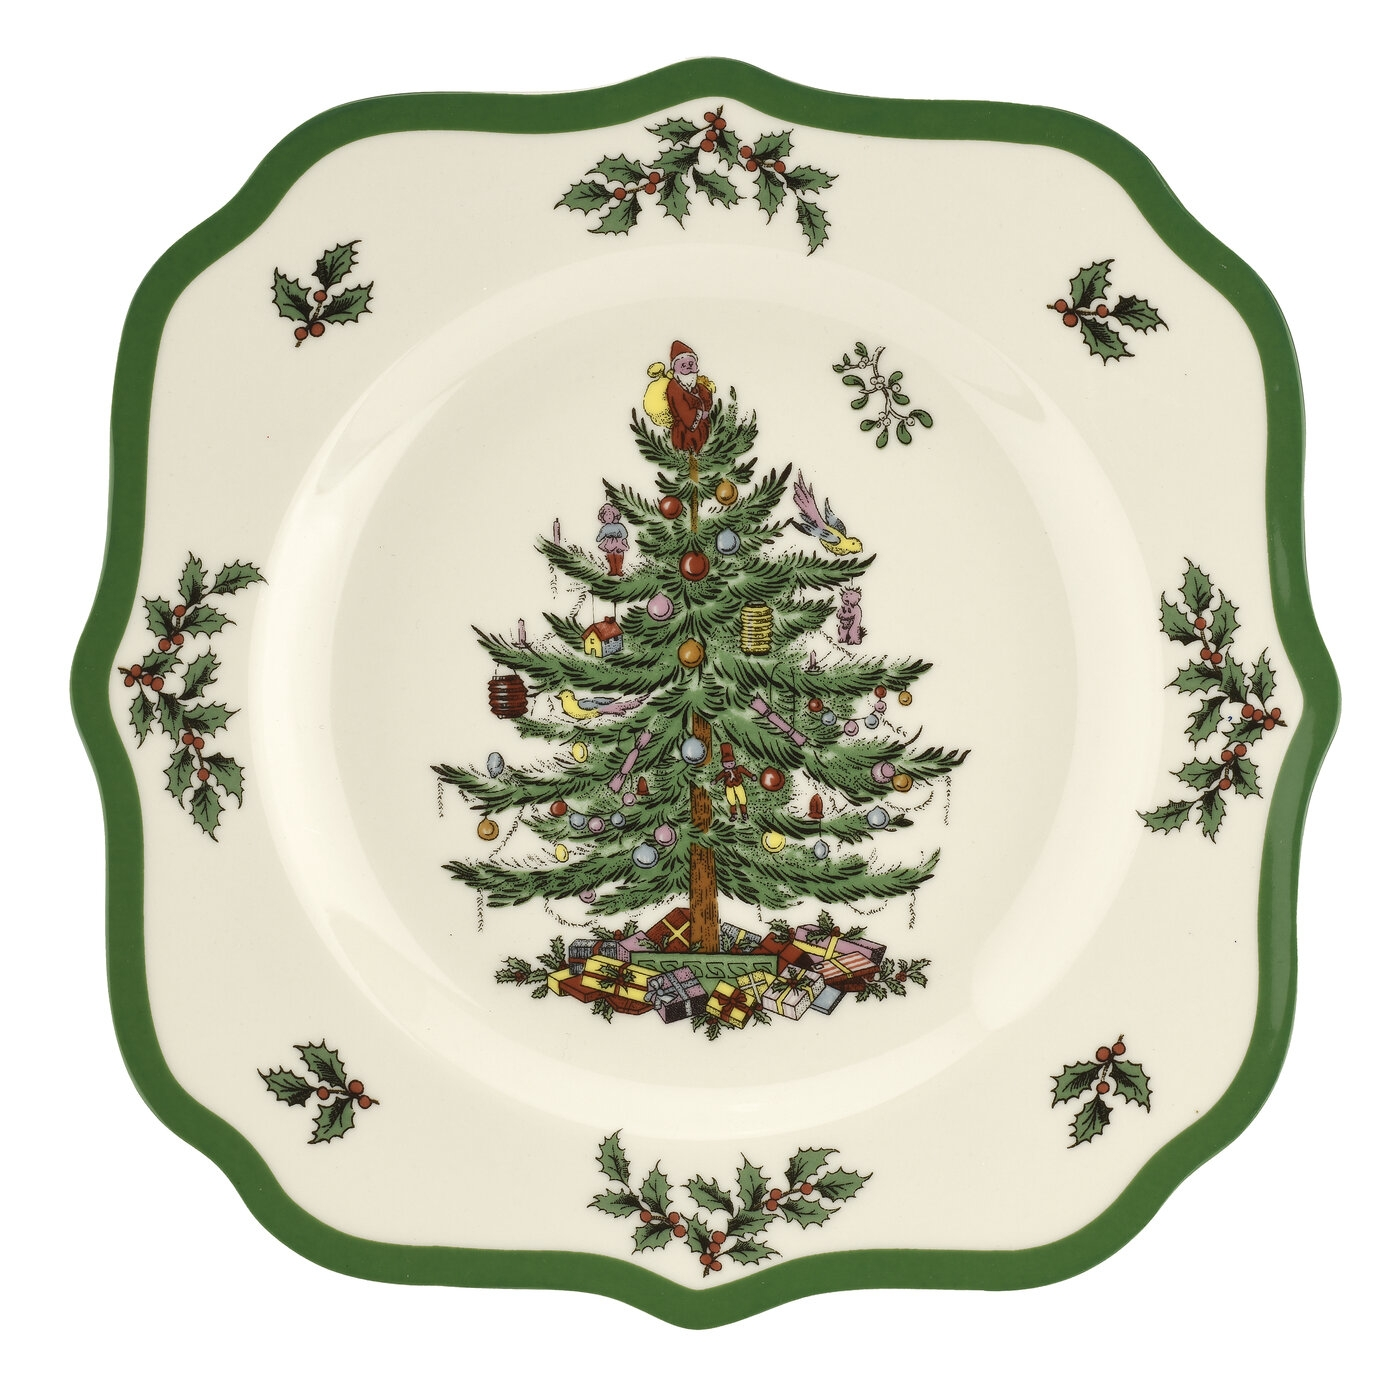 Spode Christmas Tree 9 Inch Scalloped Salad Plate image number 0